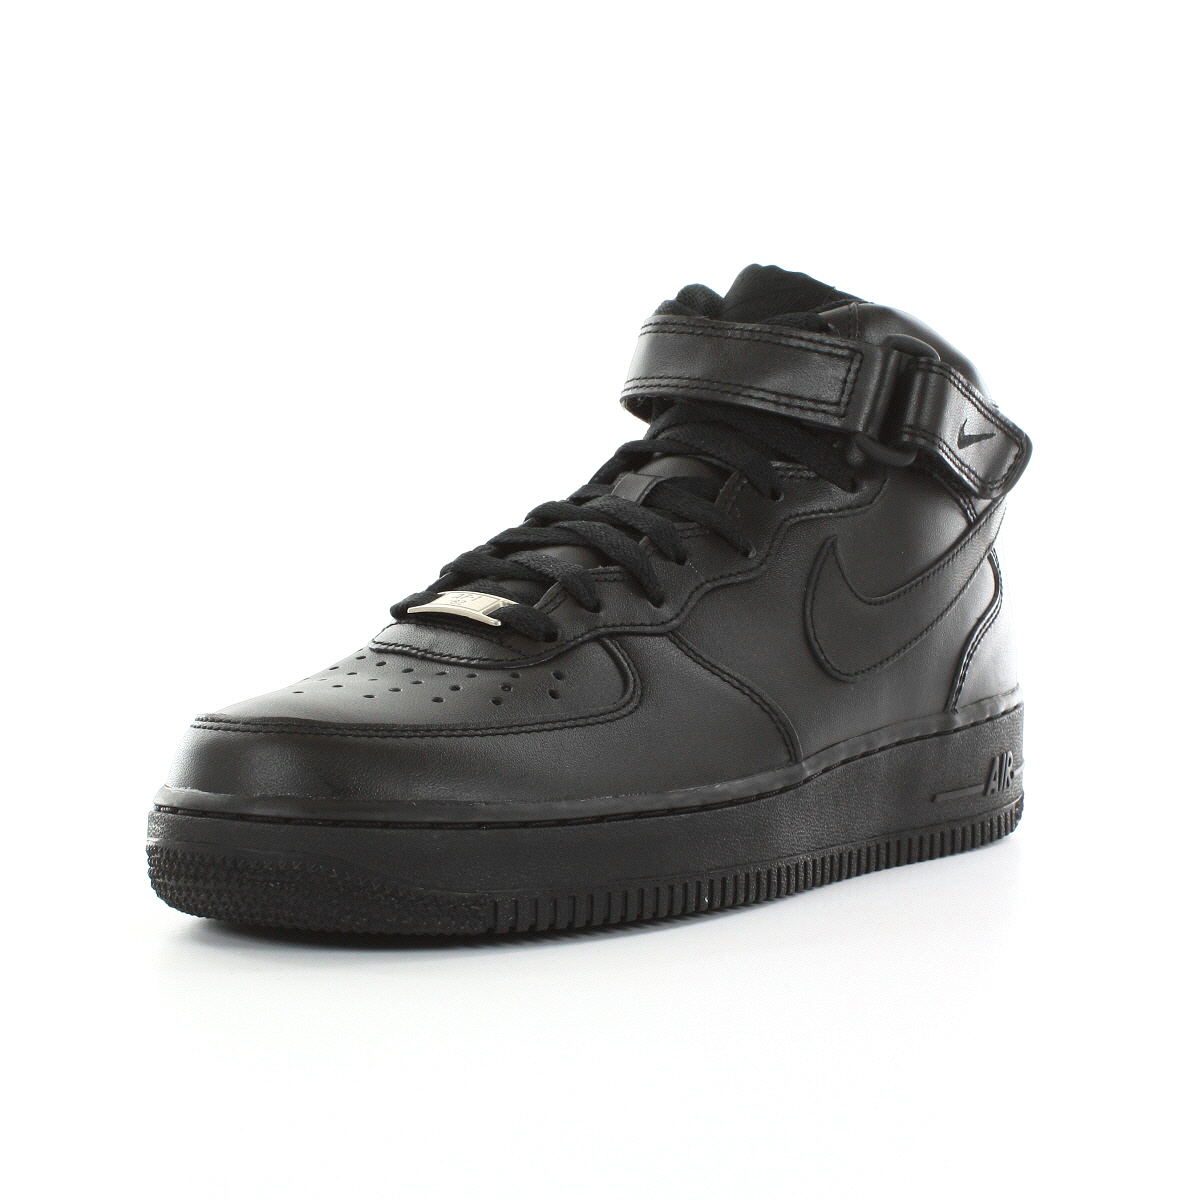 Chaussures Force Baskets Nike Homme Air Force Chaussures 1 Mid '07 Taille Noir Noire 228ee2